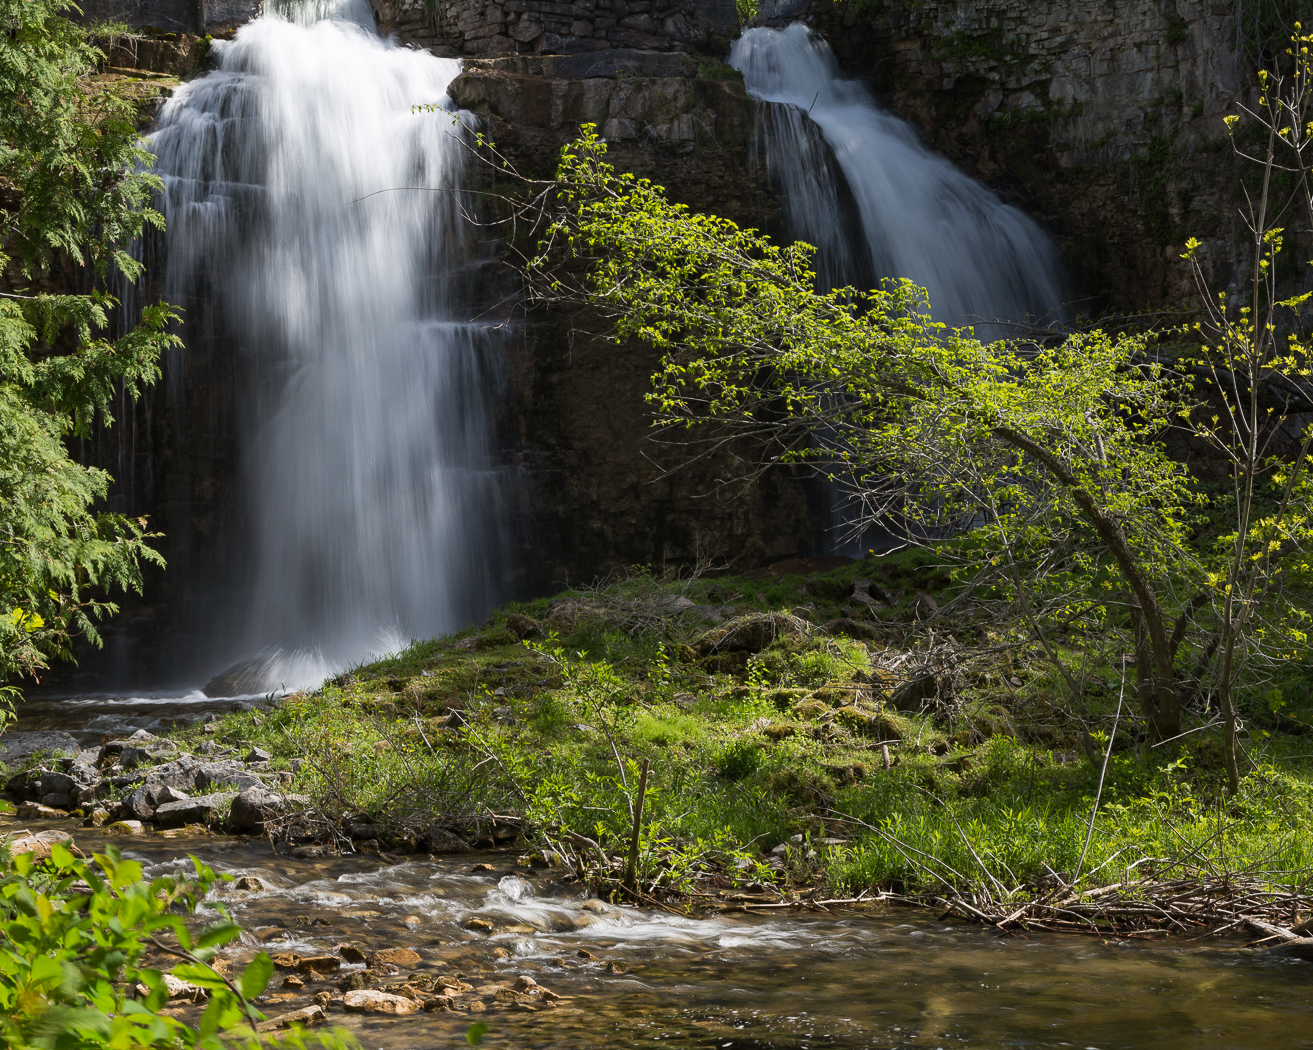 Double cascading waterfall at Walters Falls